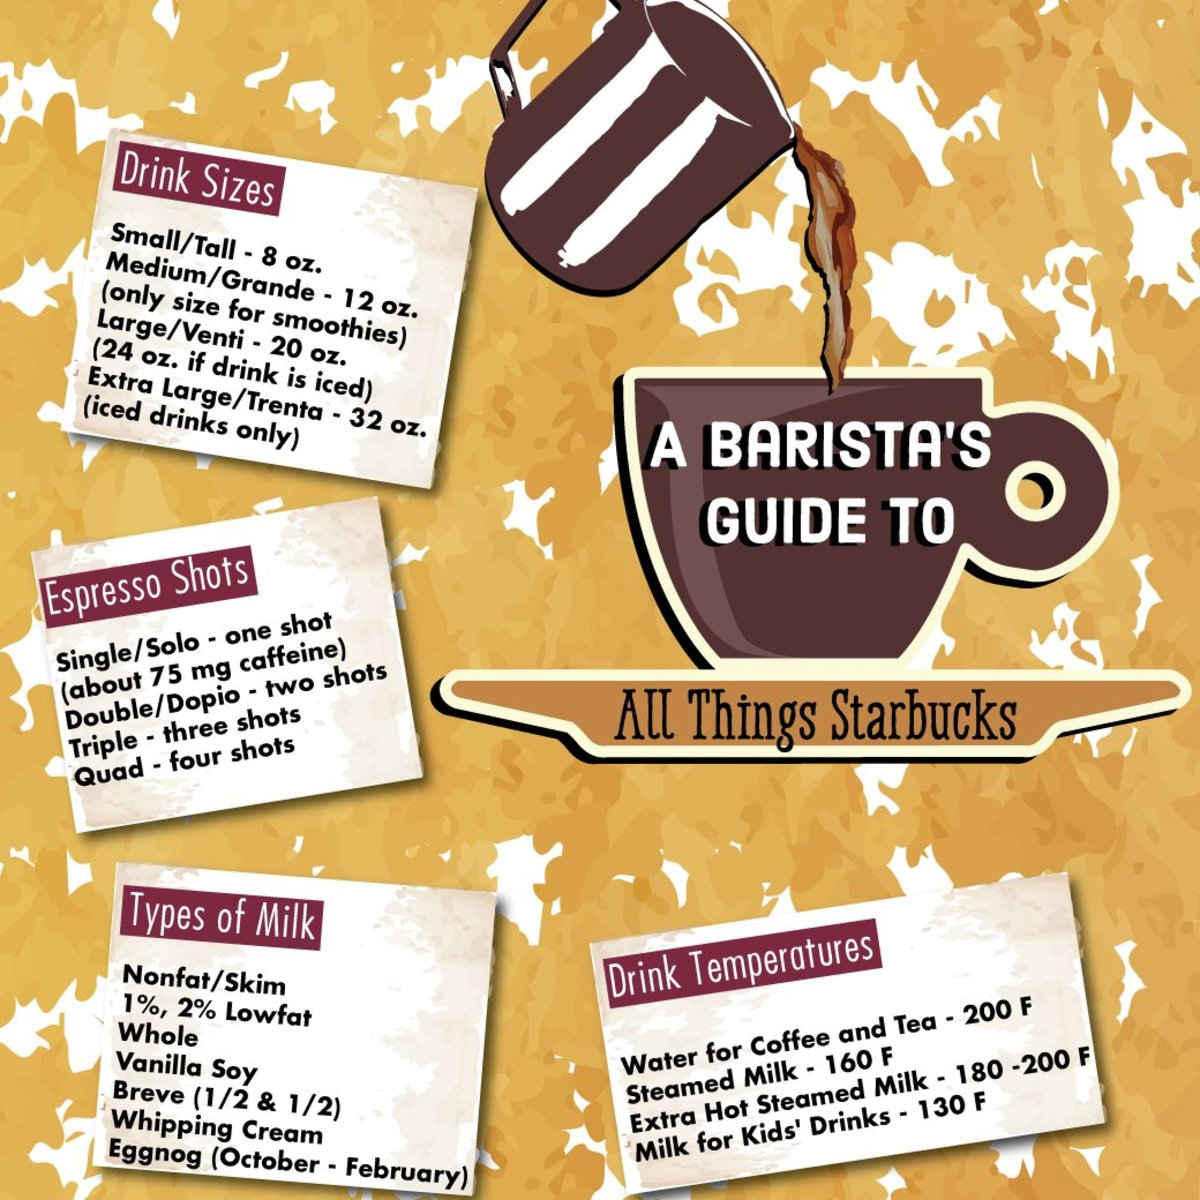 Starbucks Drink Guide: Terms